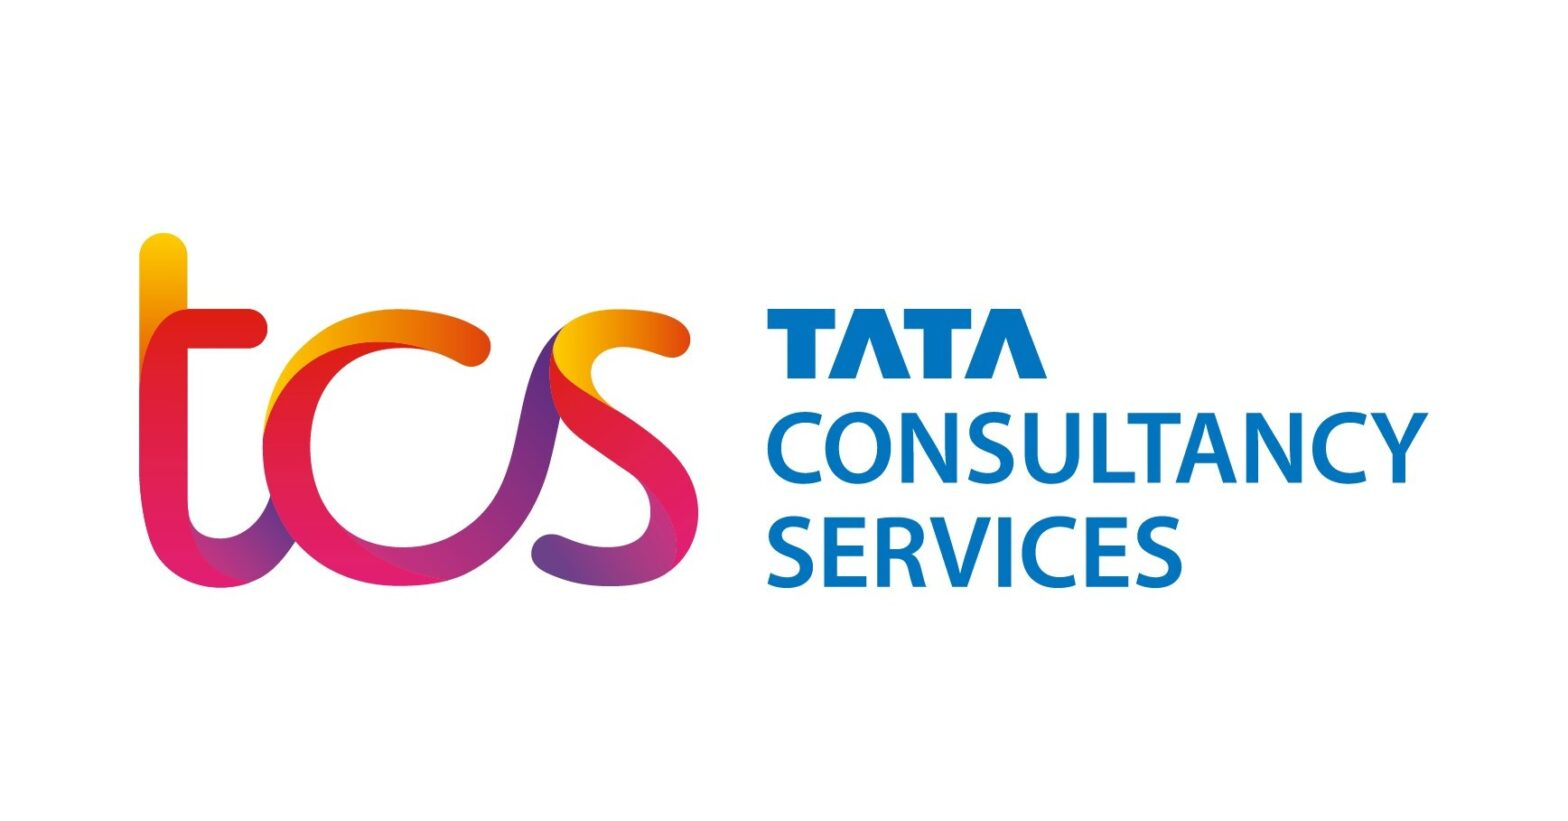 TCS Q2 results: Consolidated PAT rises 14% to Rs 9,624 cr, revenue up 17%